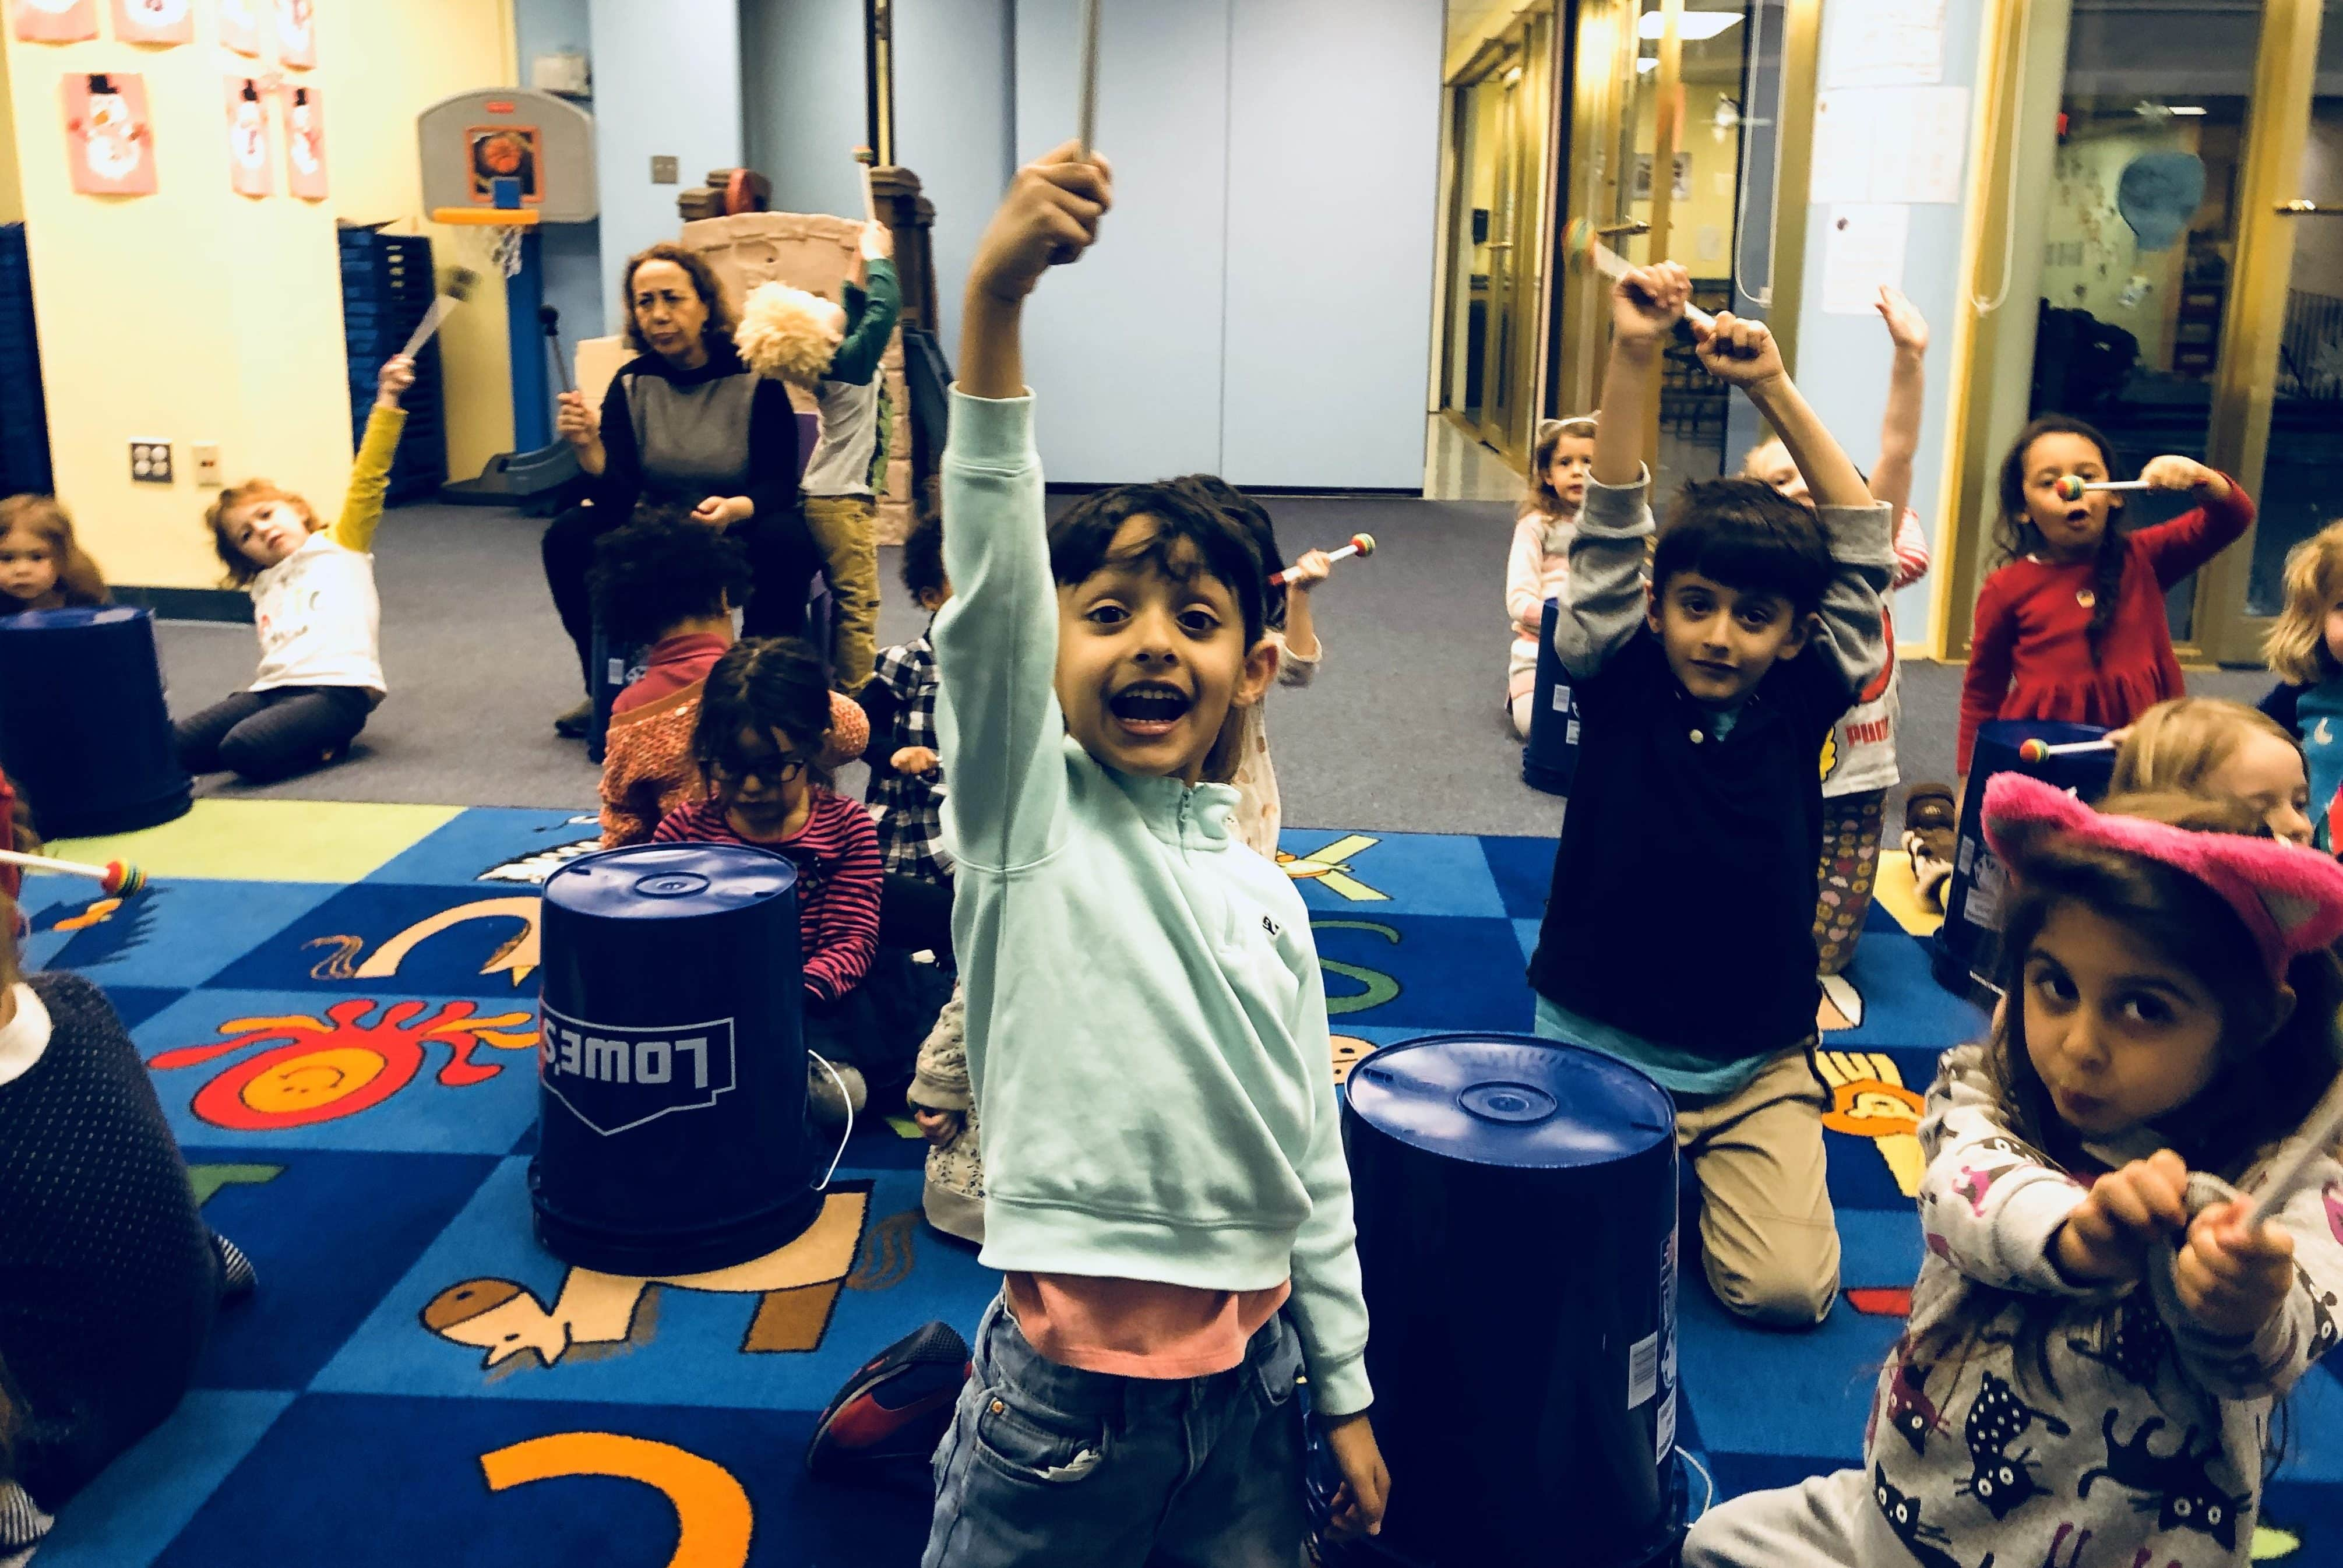 Students Smiling Playing Buckets